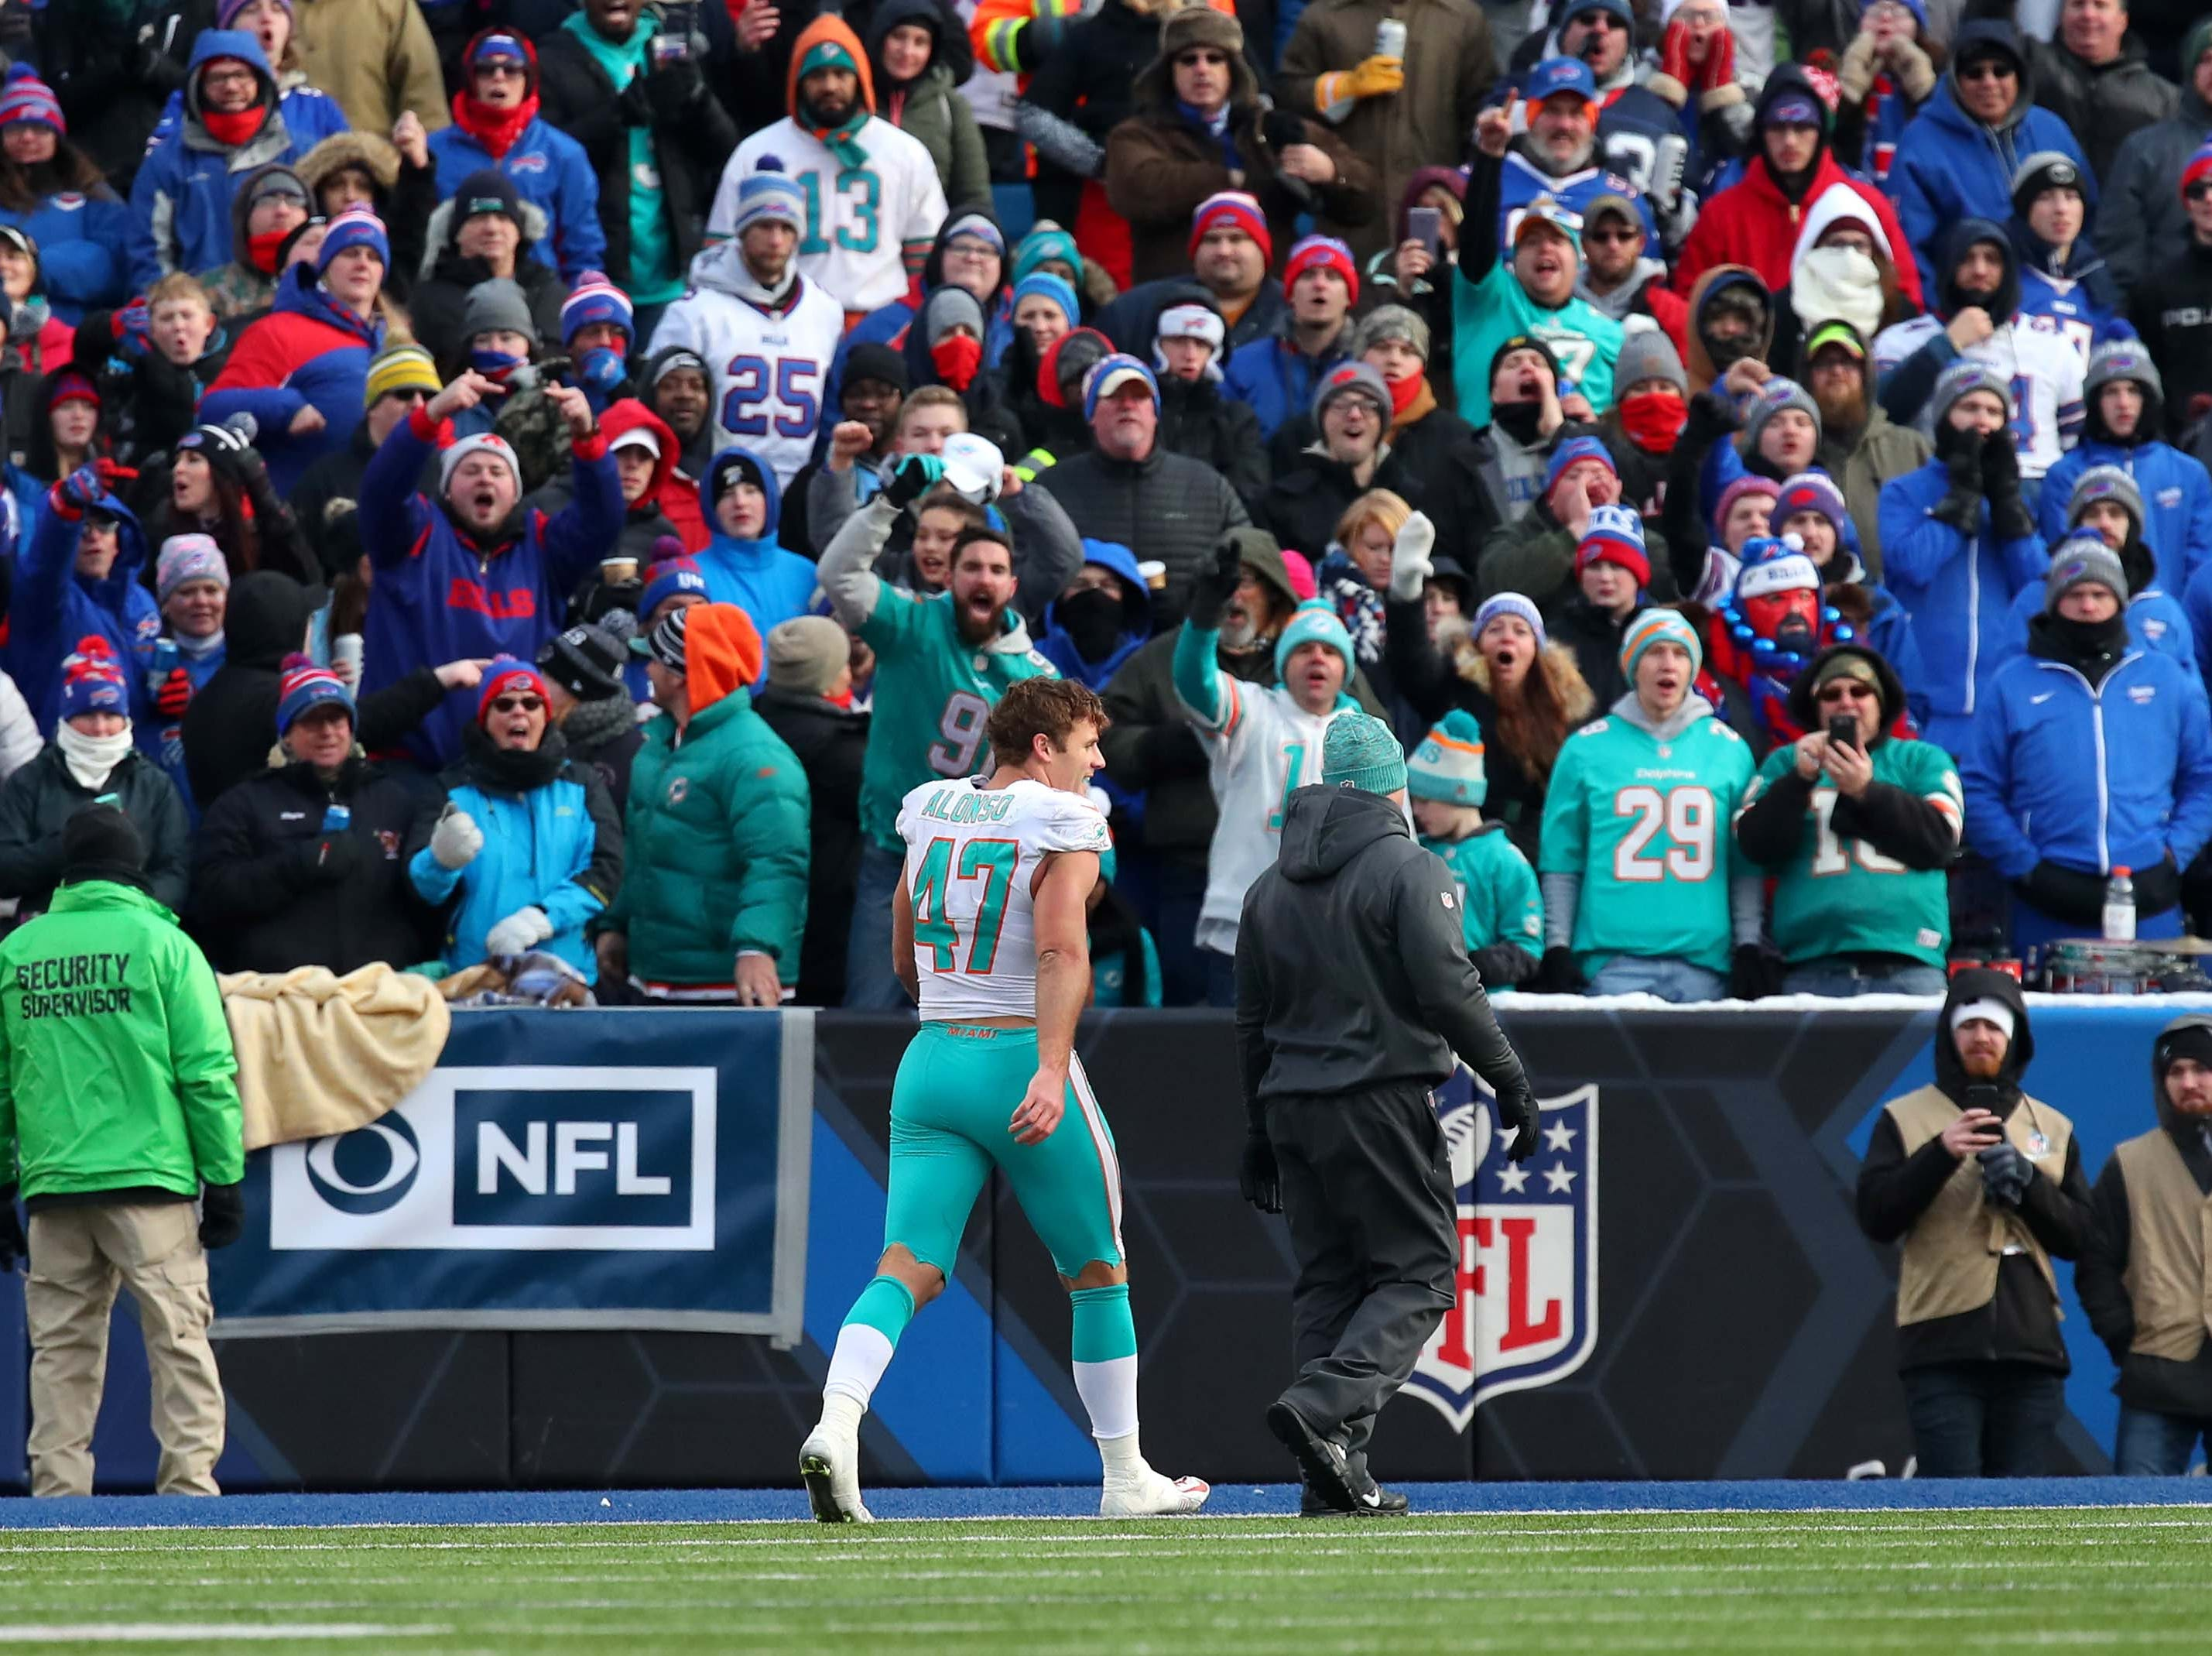 Dec 30, 2018; Orchard Park, NY, USA; Miami Dolphins outside linebacker Kiko Alonso (47) leaves the field after being ejected against the Buffalo Bills during the third quarter at New Era Field. Mandatory Credit: Rich Barnes-USA TODAY Sports